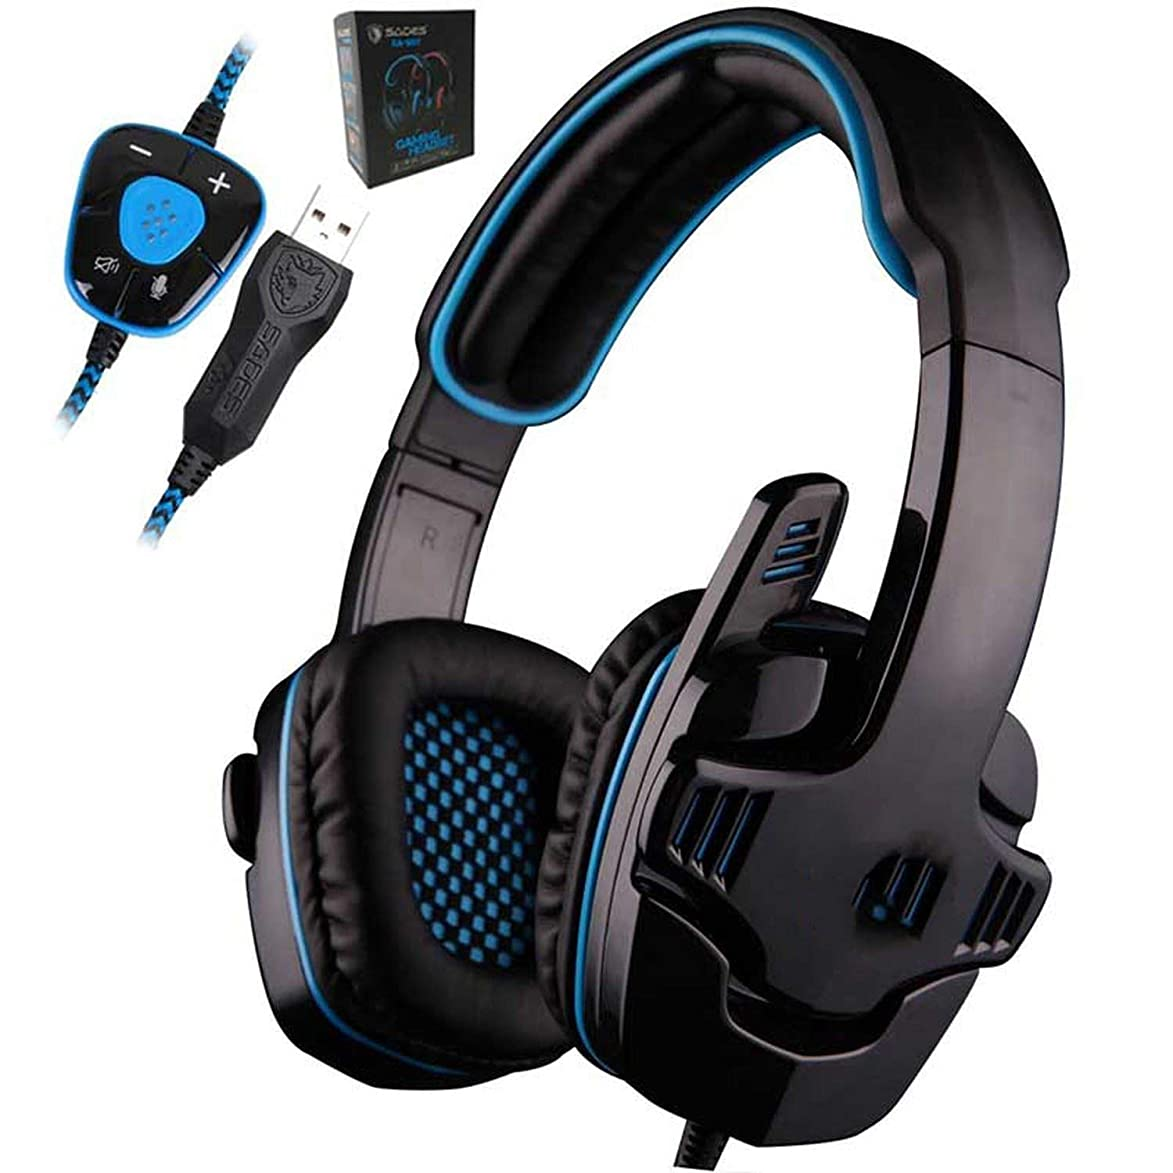 QHGDY Tshirt Gaming Headset 7.1 Surround USB Headphone Microphone Noise Cancelling Mic Computer Gamer,Blue ccj190375862194